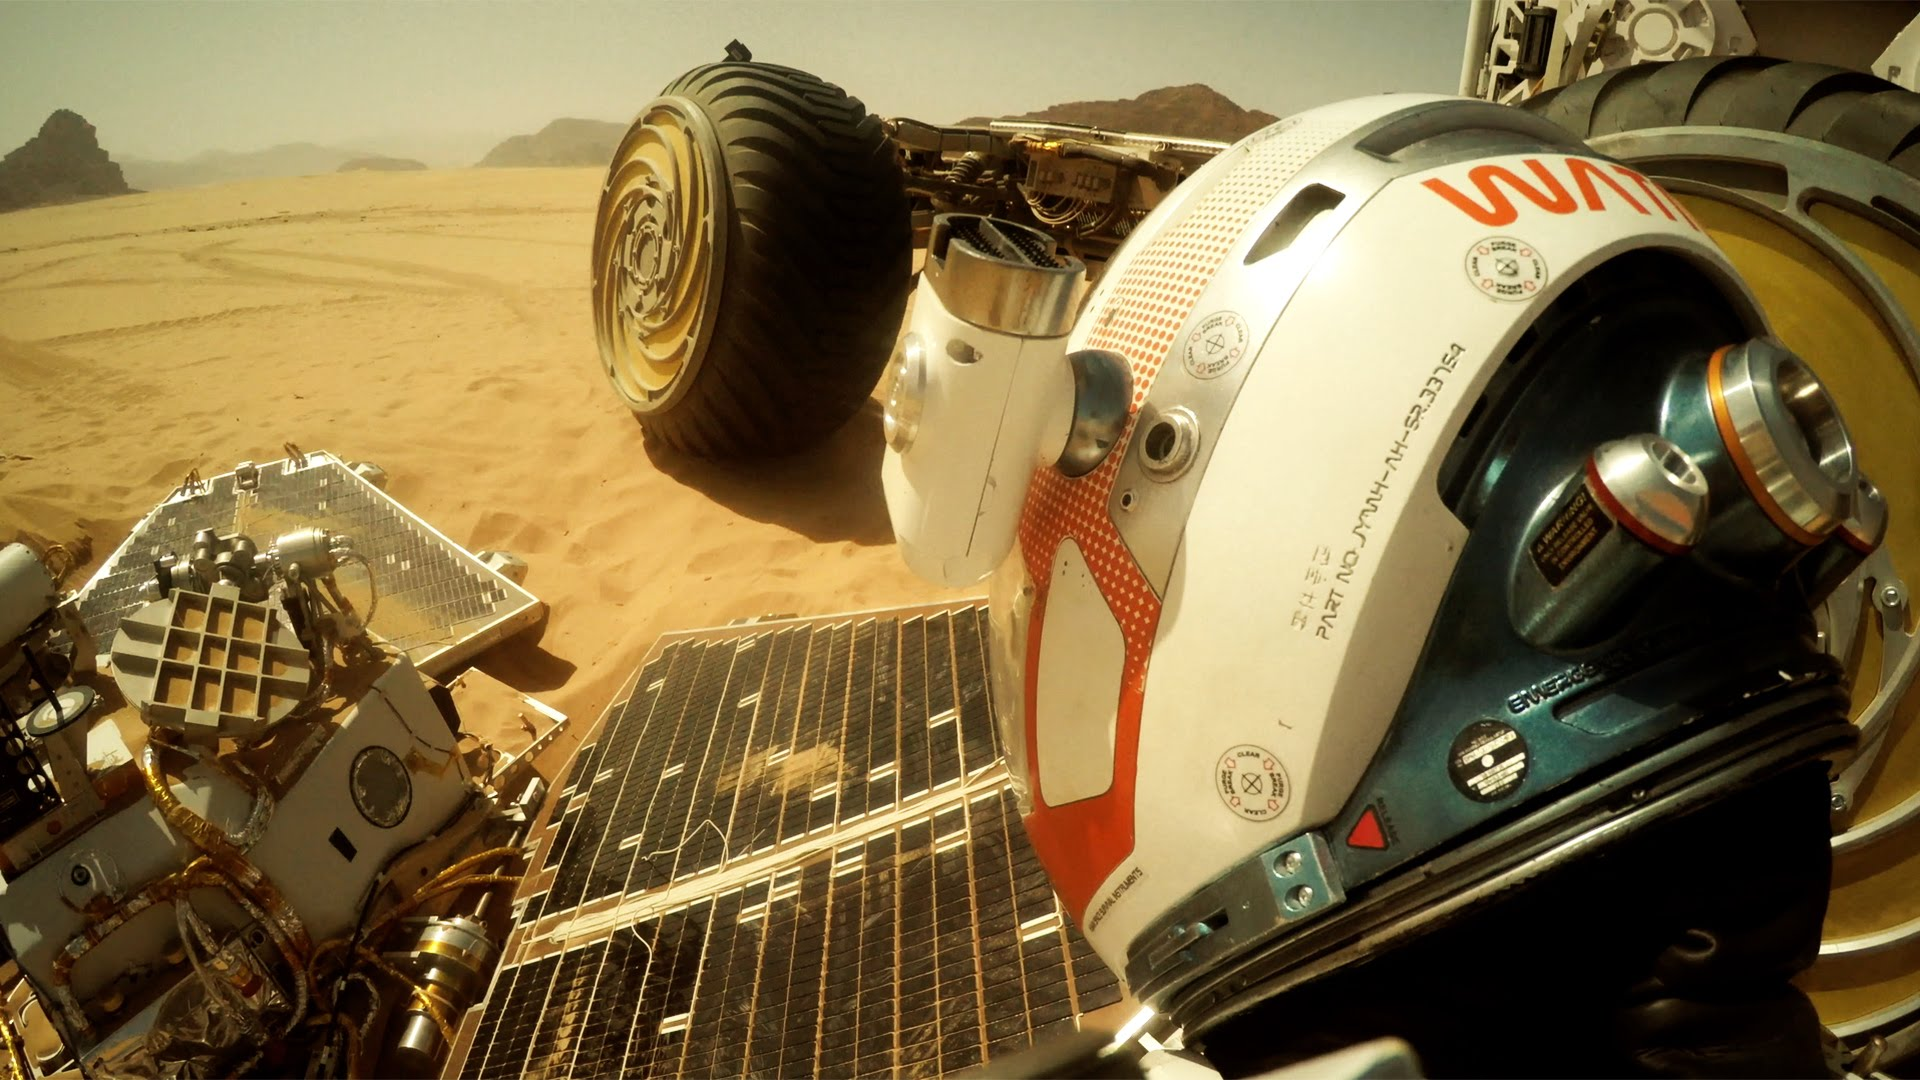 The Martian Download